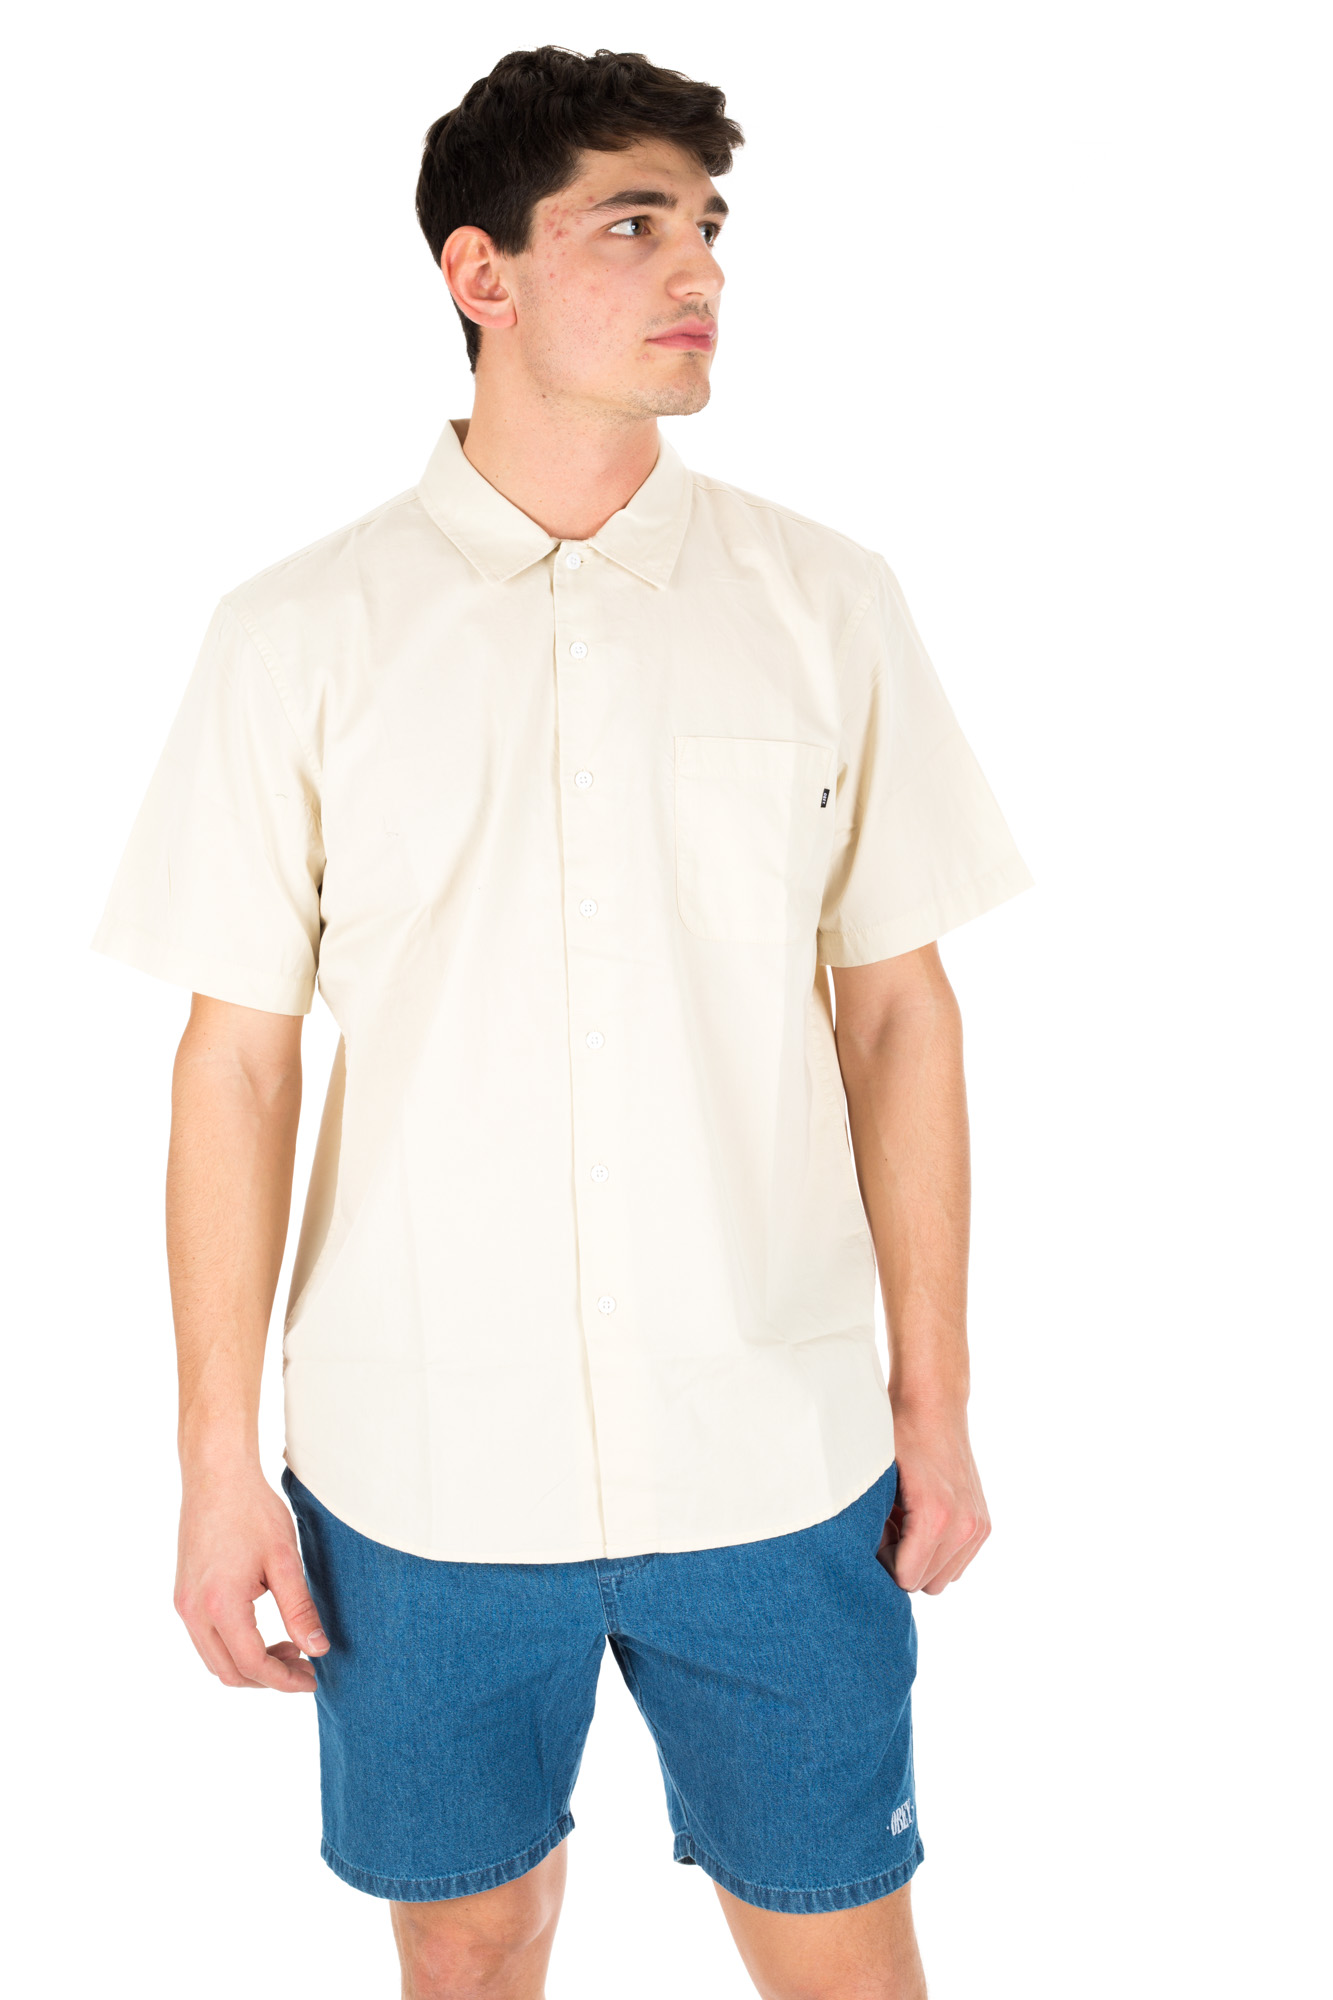 Obey - Cream Shirt with embroidery